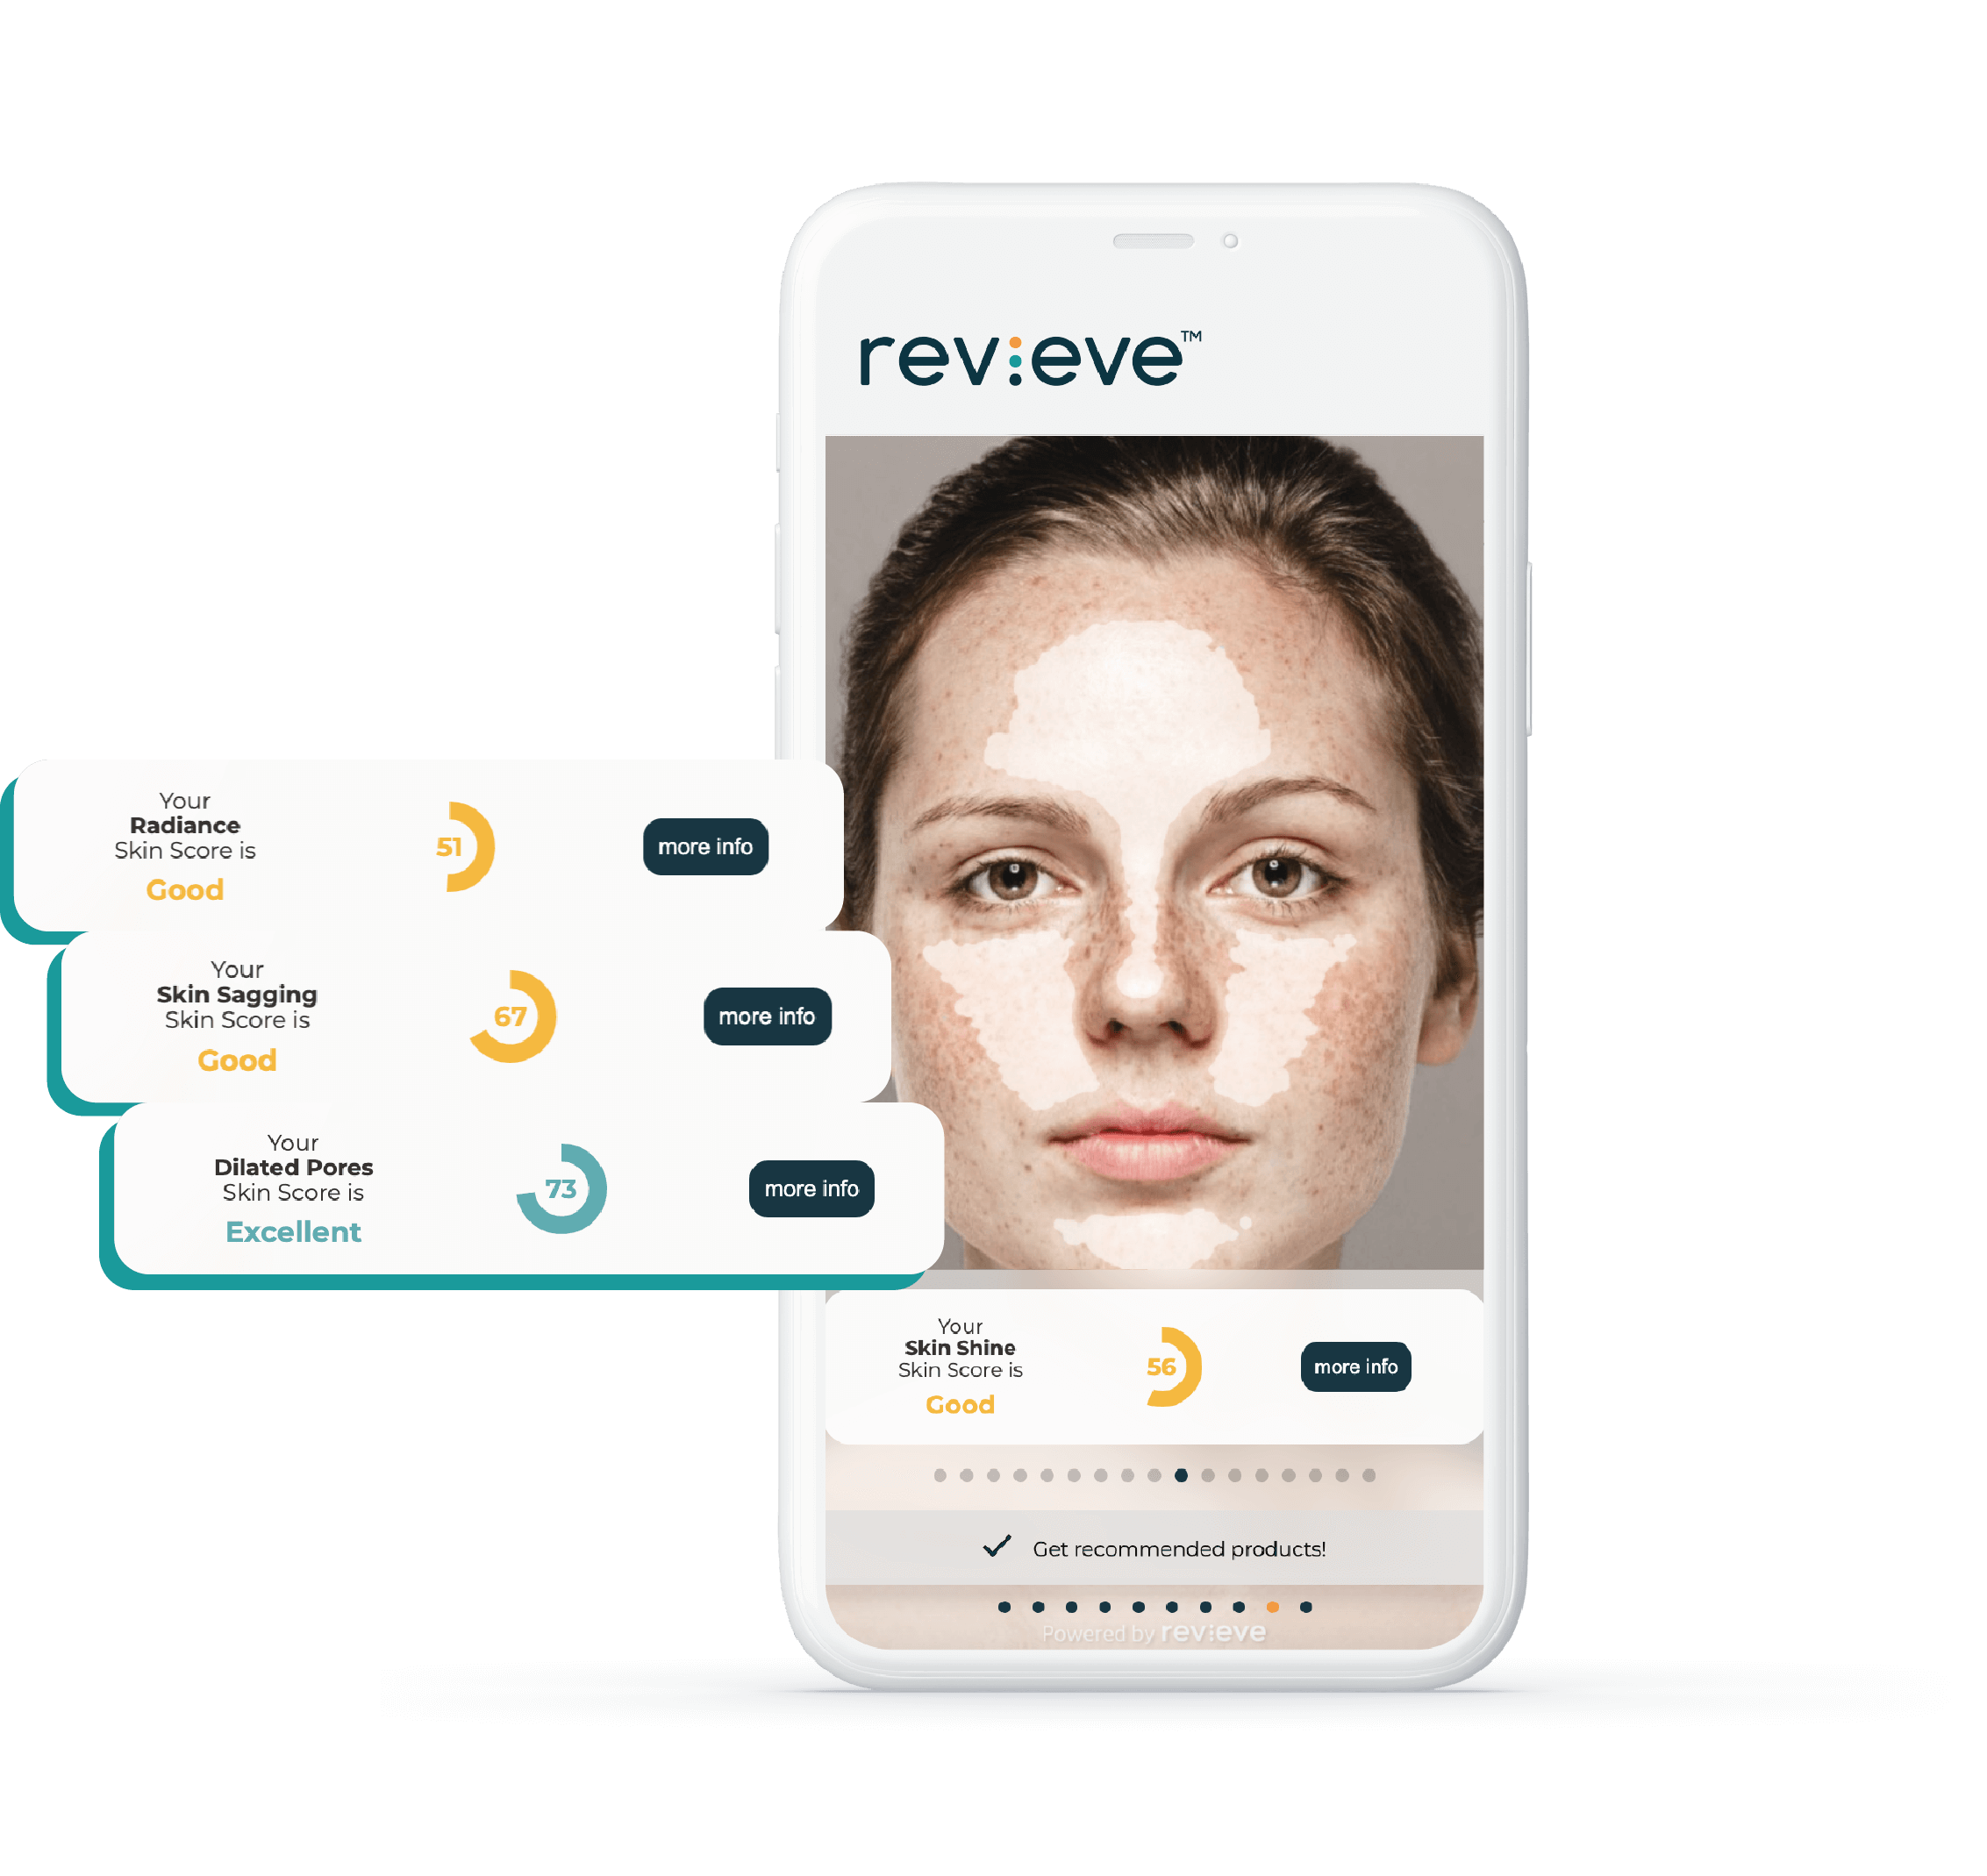 Revieve AI/AR Technology